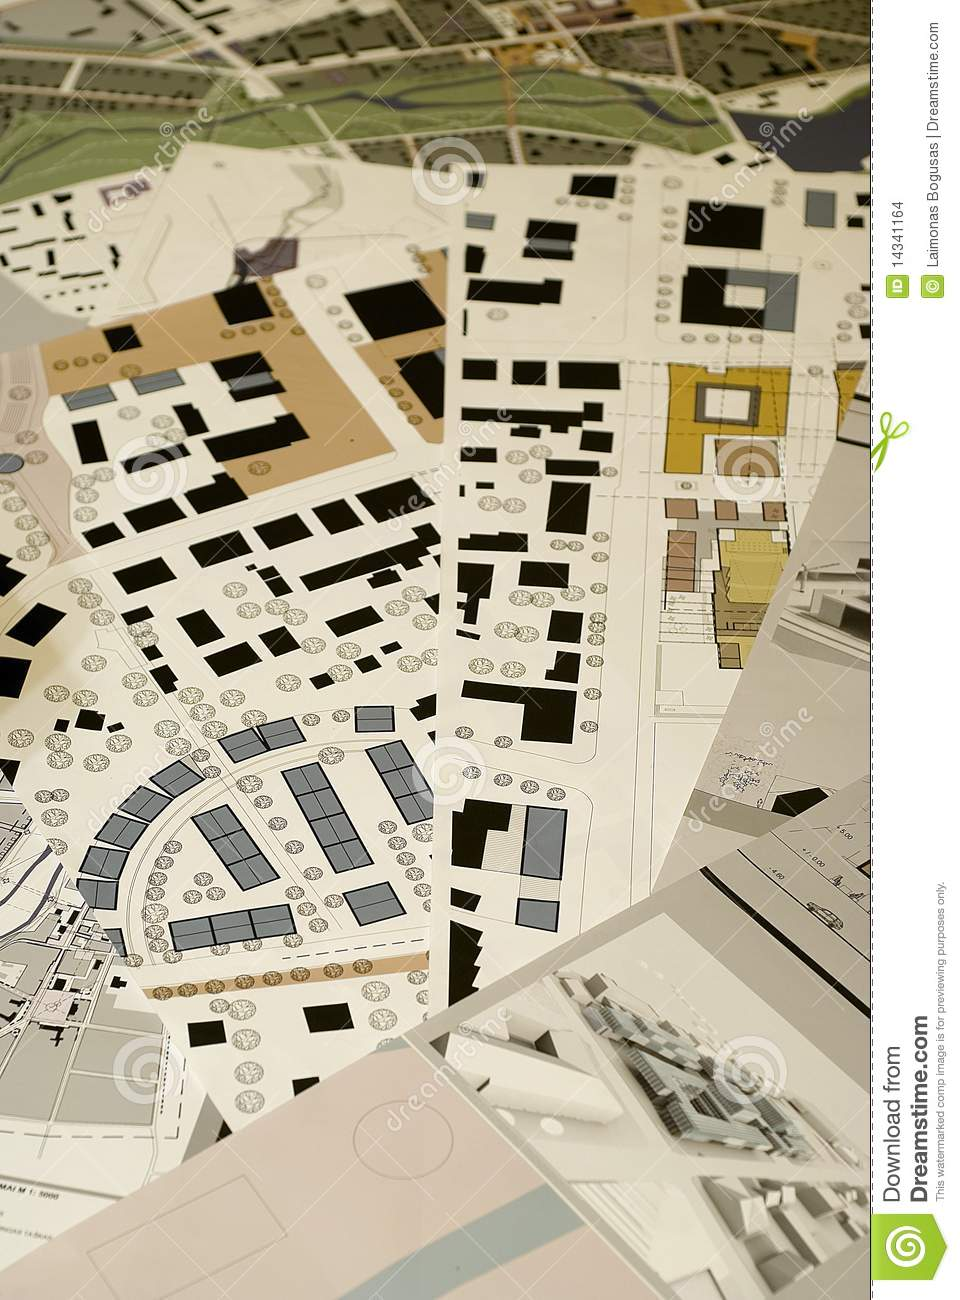 Architectural drawings blueprints city planning stock for Blueprint architects